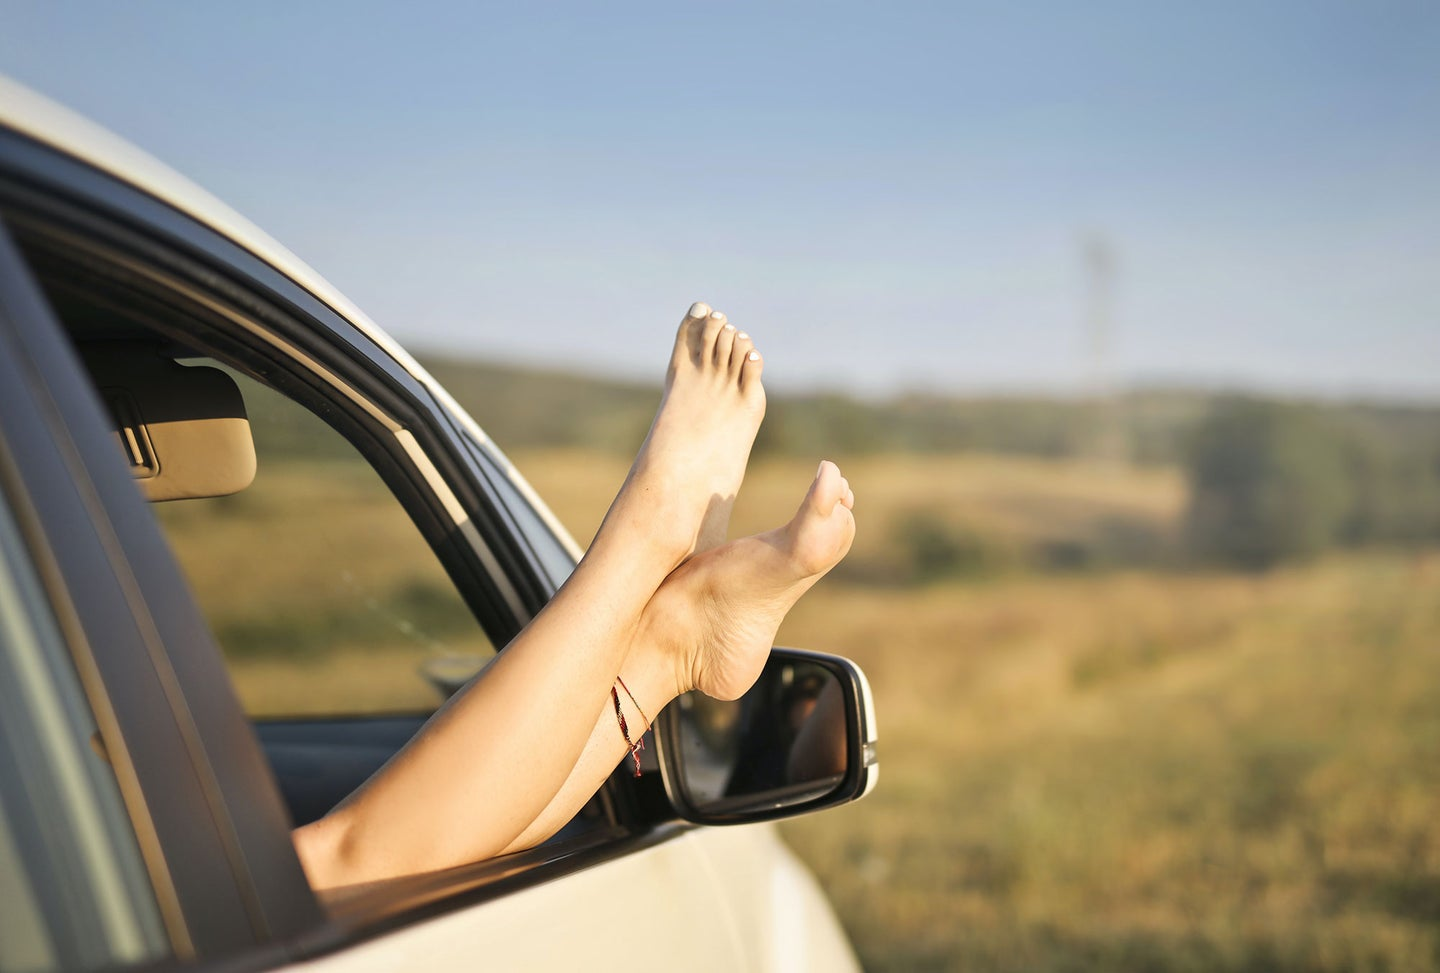 Person's bare legs hanging out of car window